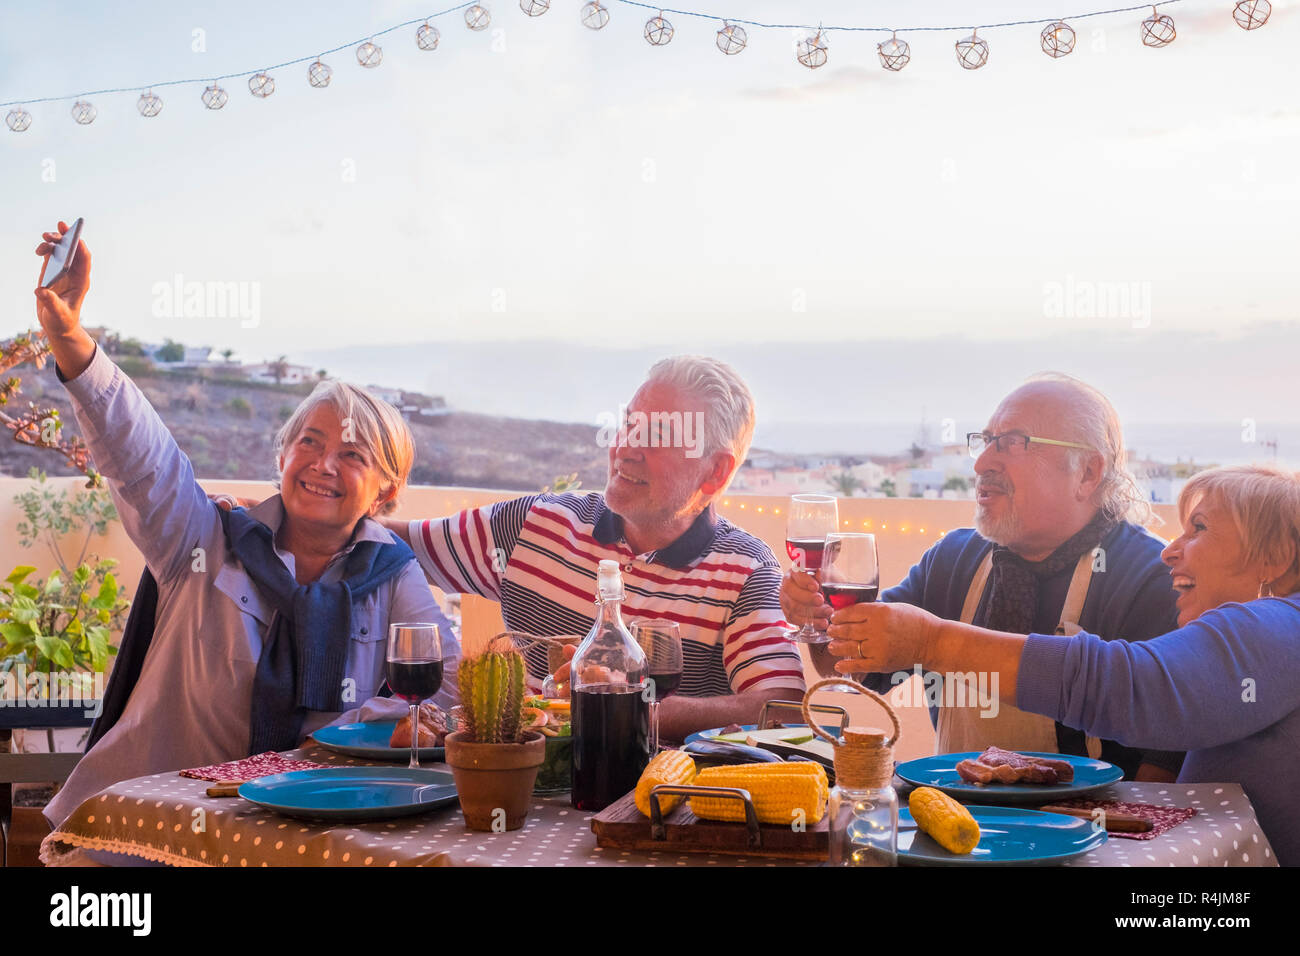 four adult matures people men and women have fun together eating and drinking on the terrace with great view on the city - the lady take a selfie pict - Stock Image